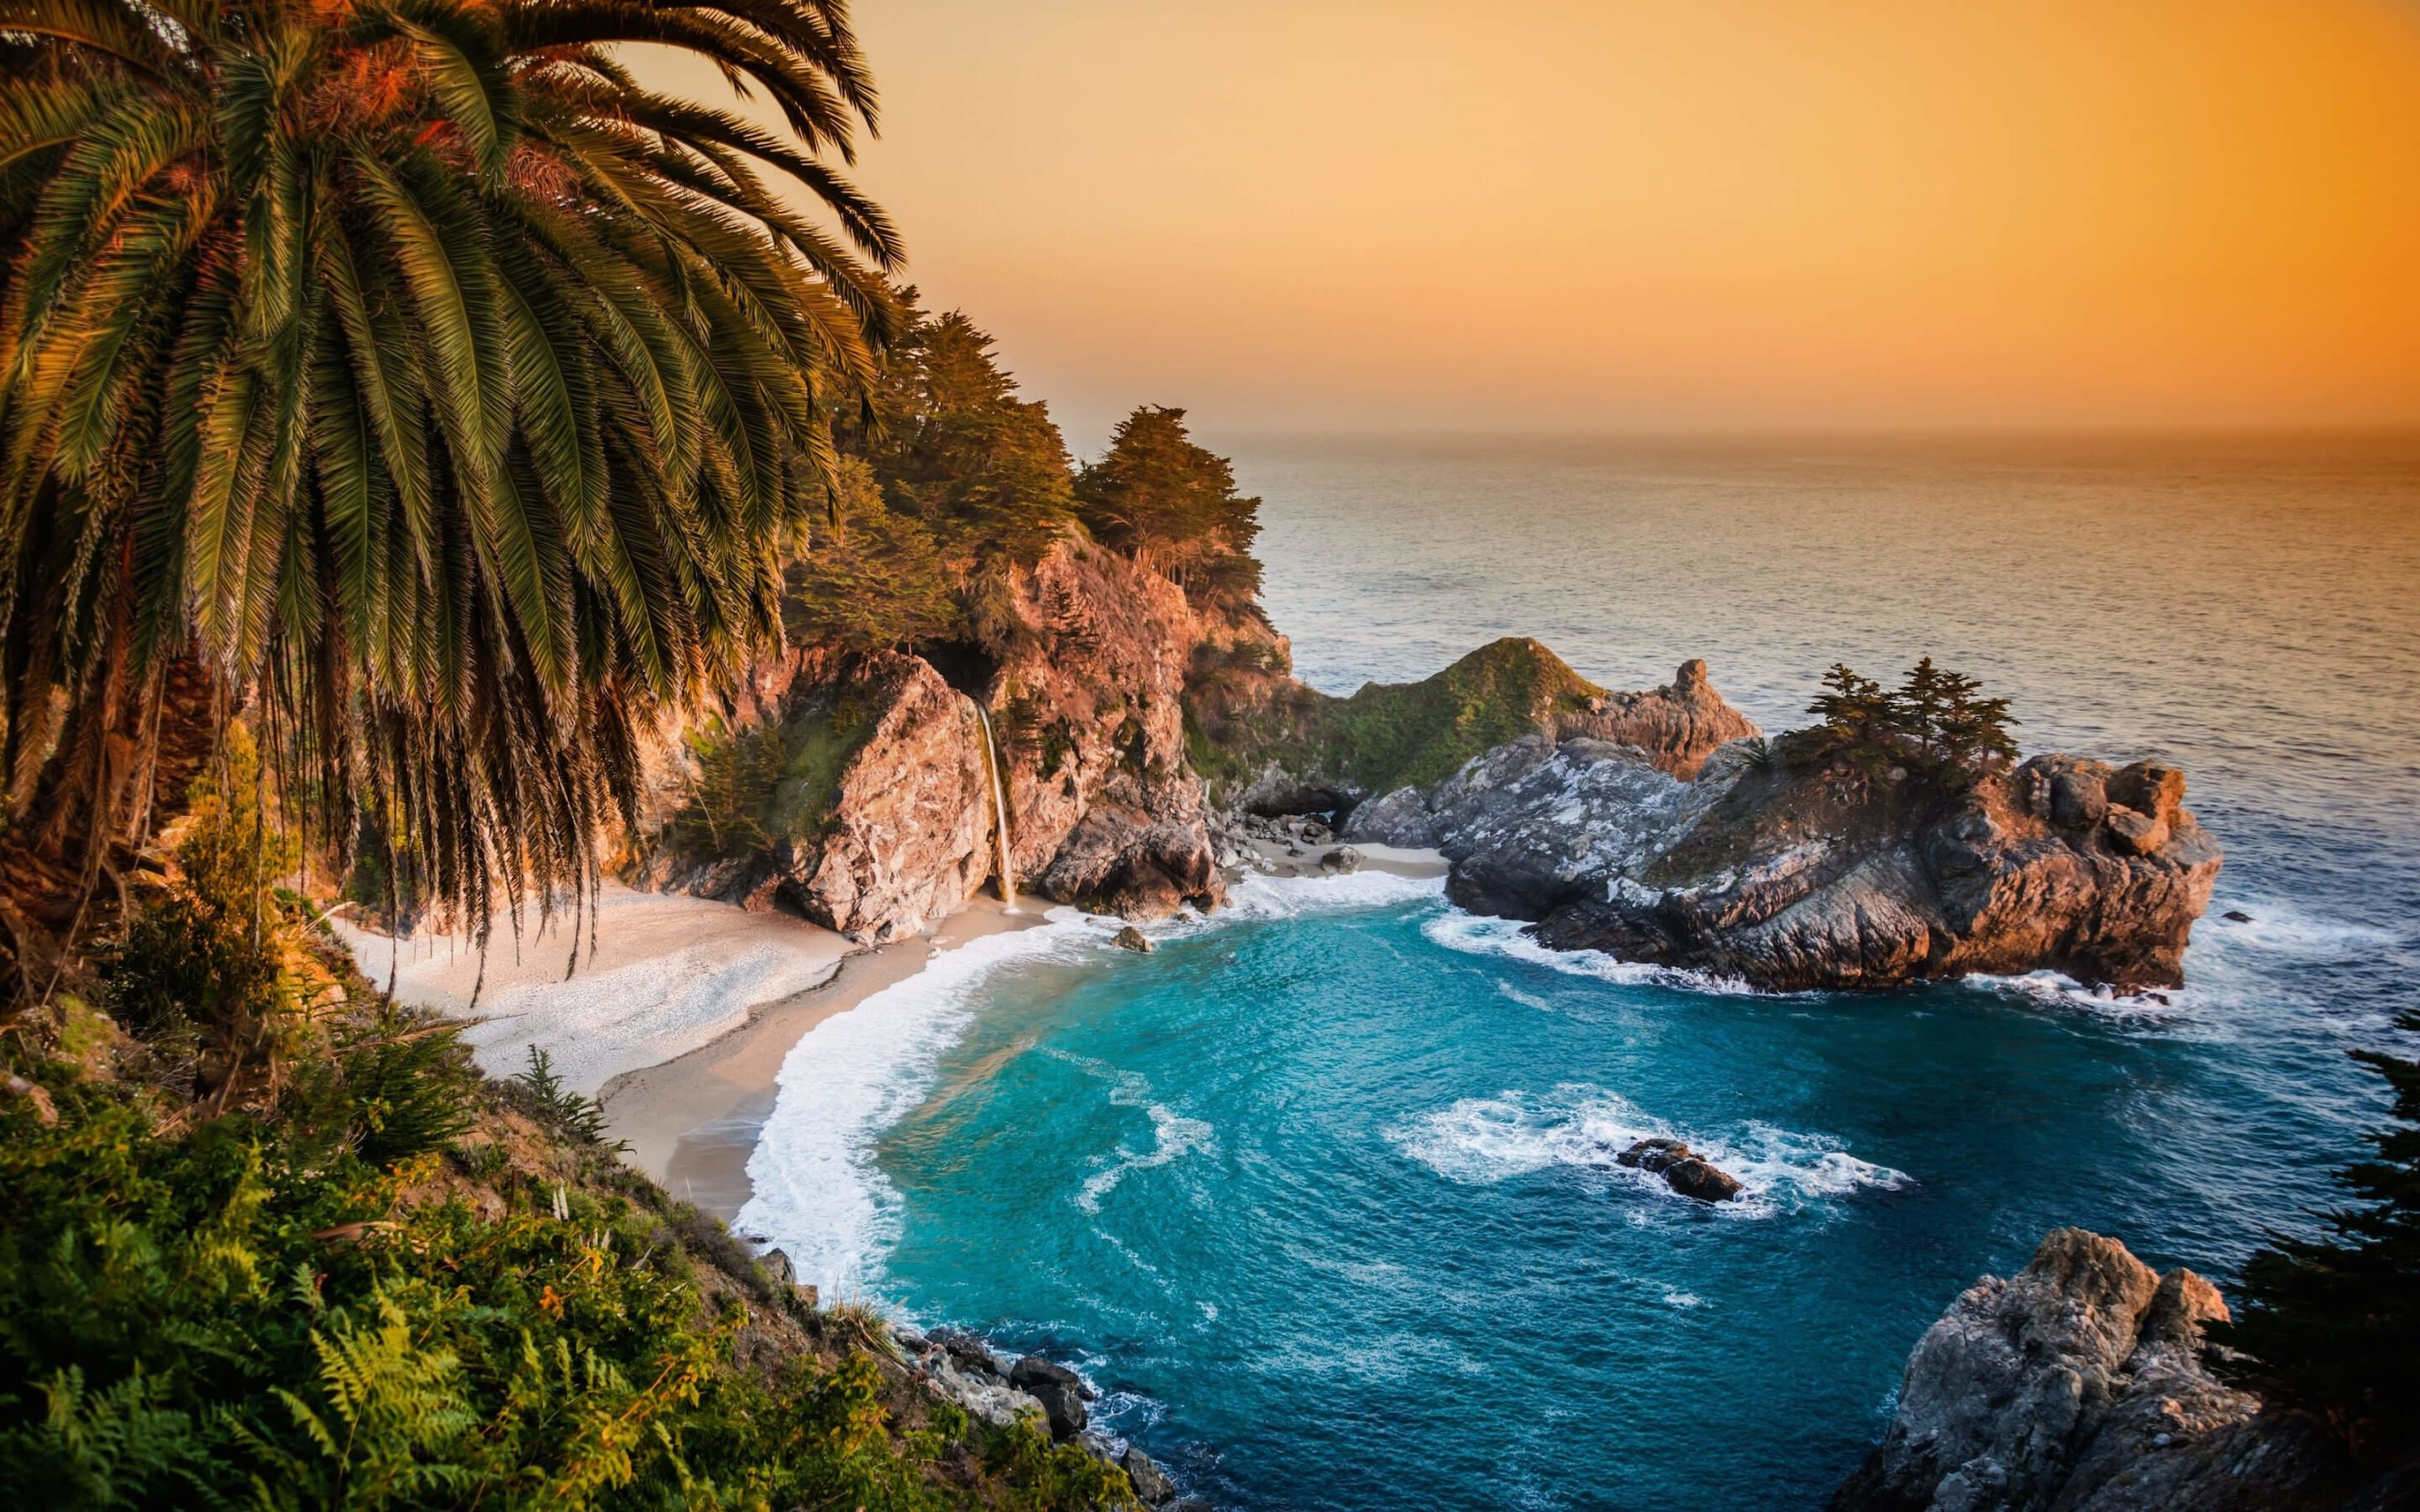 McWay Falls in Big Sur, California, USA Wallpaper for Desktop 2560x1600